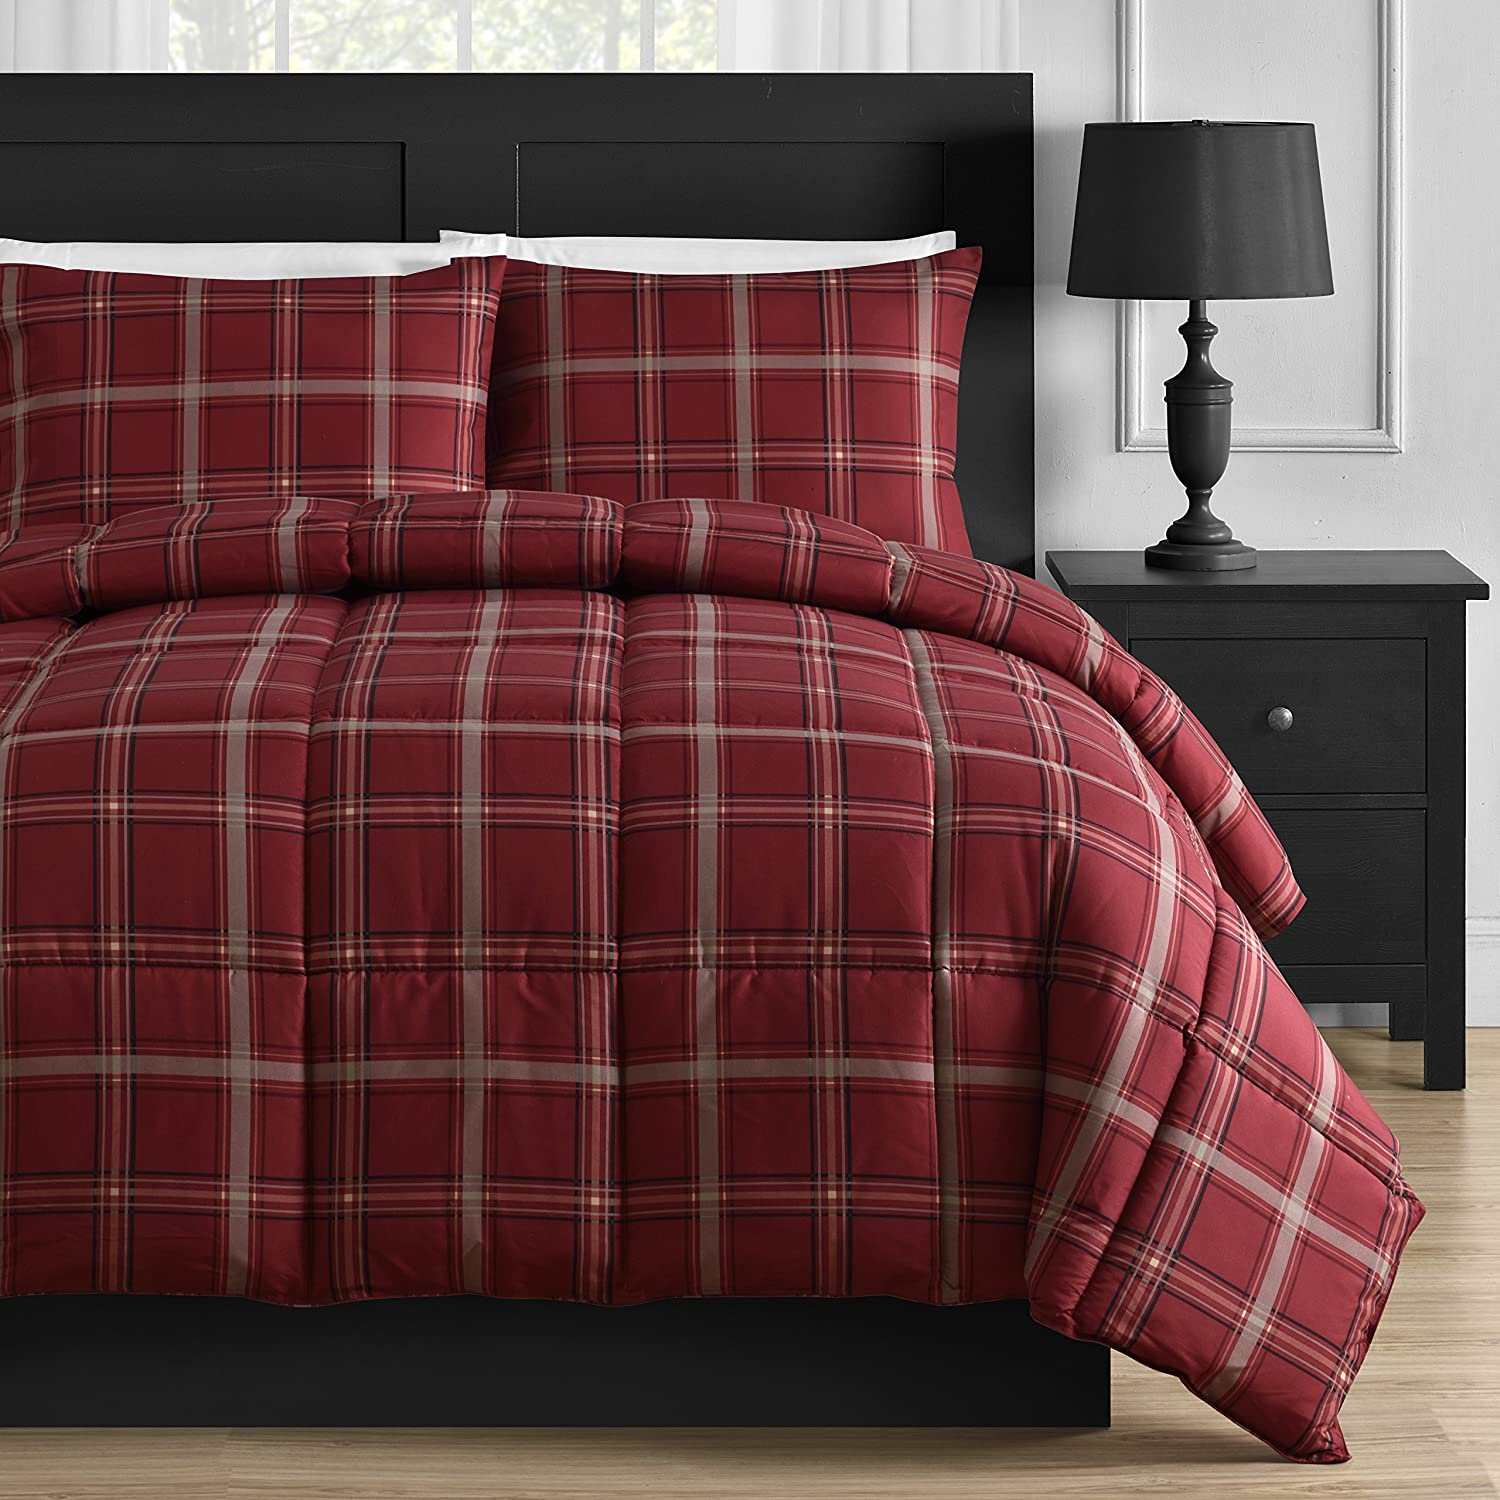 Comfy Bedding Luxurious Rose Red Plaid Down Alternative 2 Piece Comforter Set